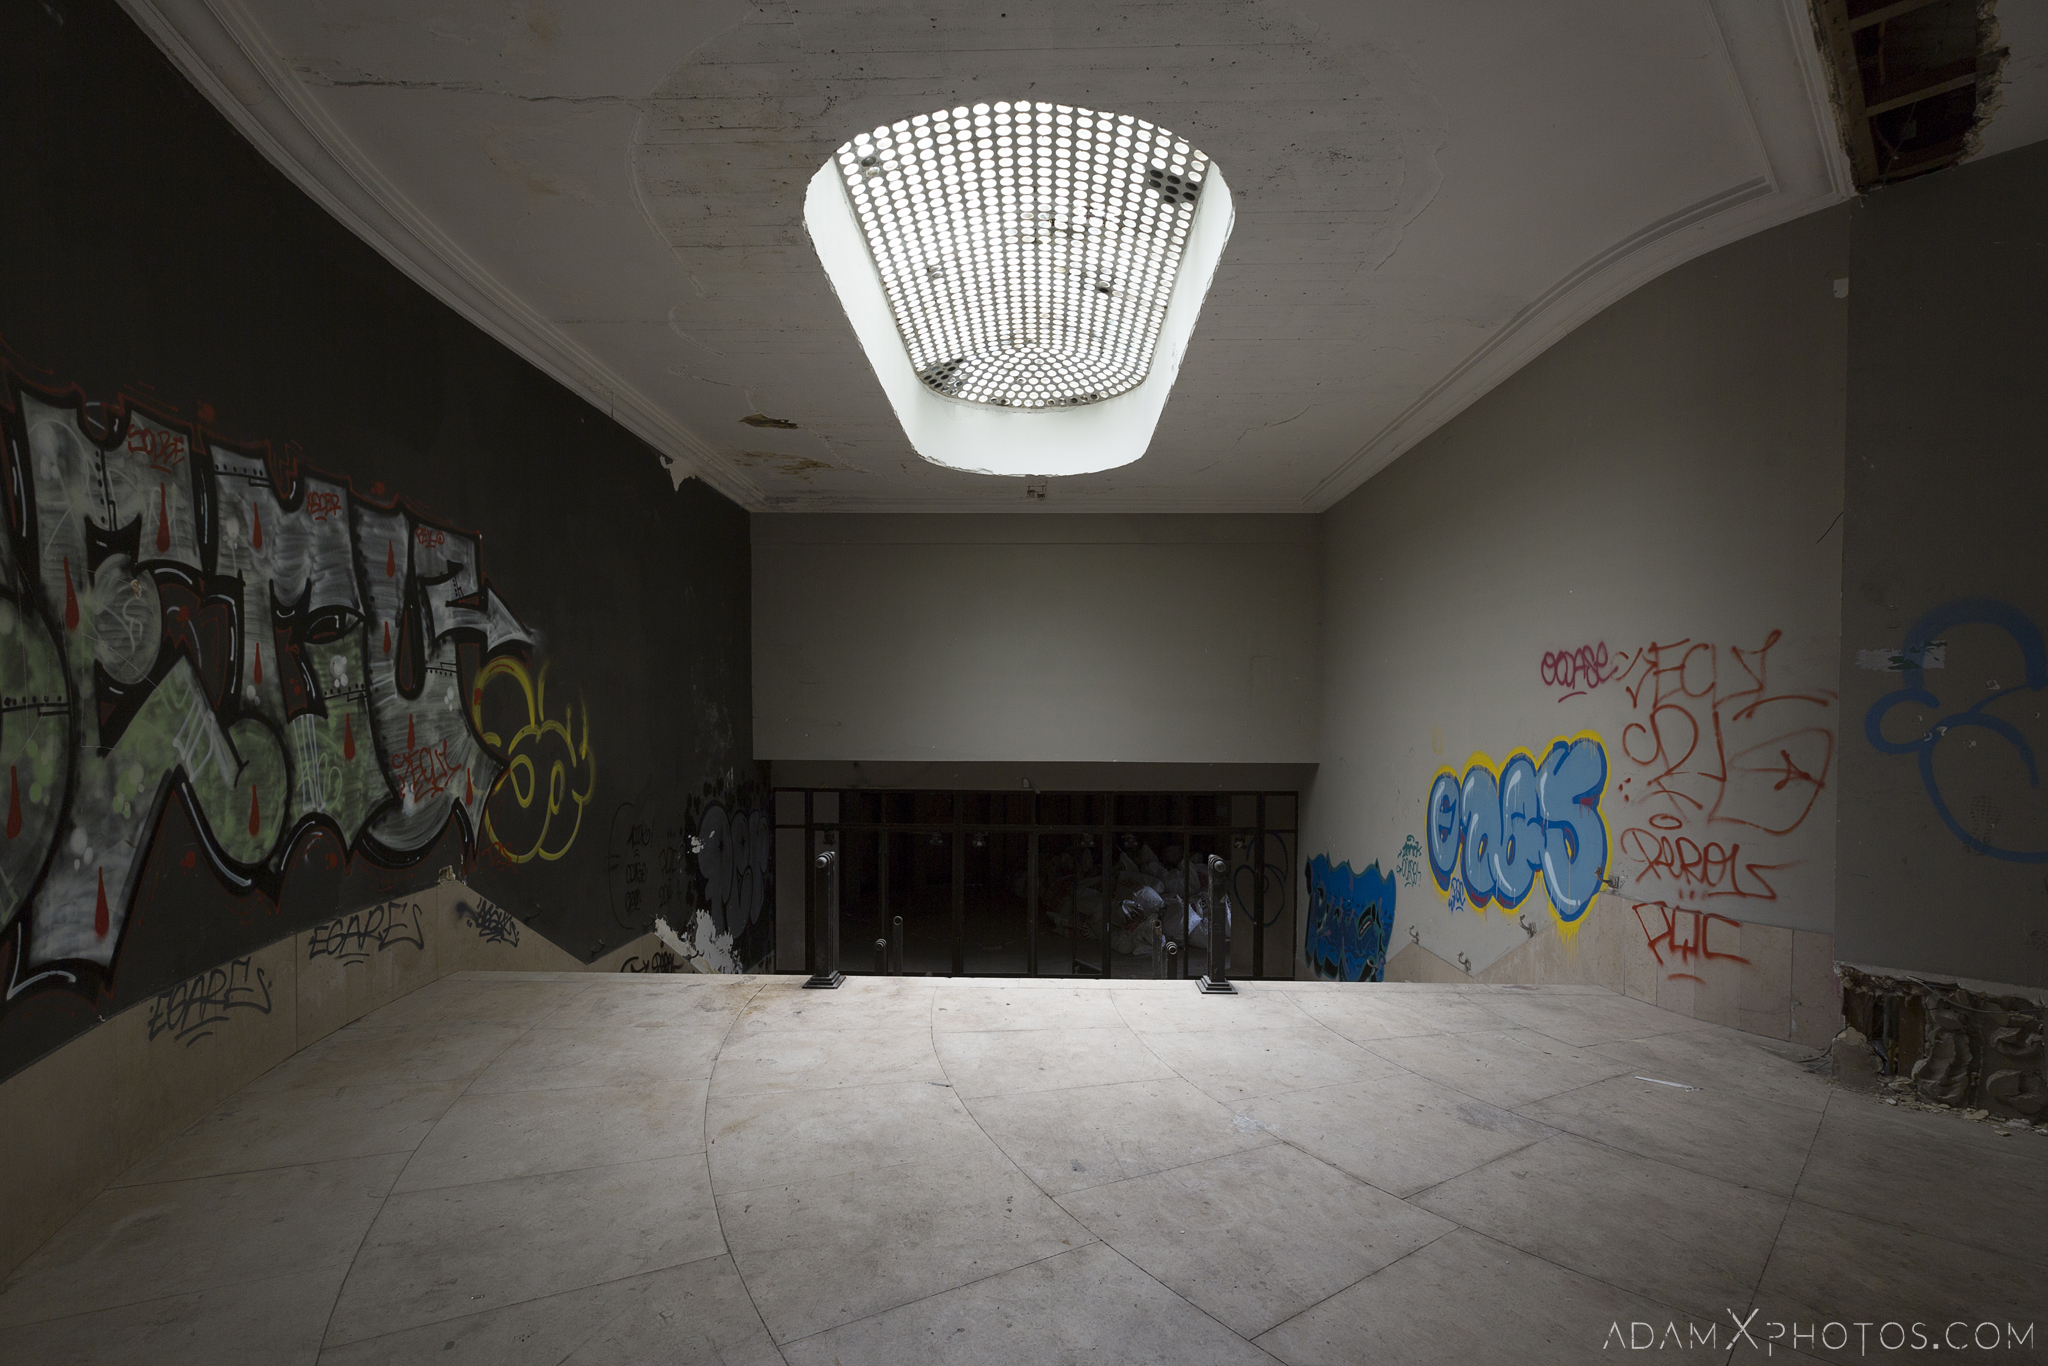 Skylight art deco Theatre Salle des fêtes d'Ougrée Marihayea (OM) Théâtre Jeusette Adam X Urban Exploration Belgium Access 2017 Abandoned decay lost forgotten derelict location creepy haunting eerie